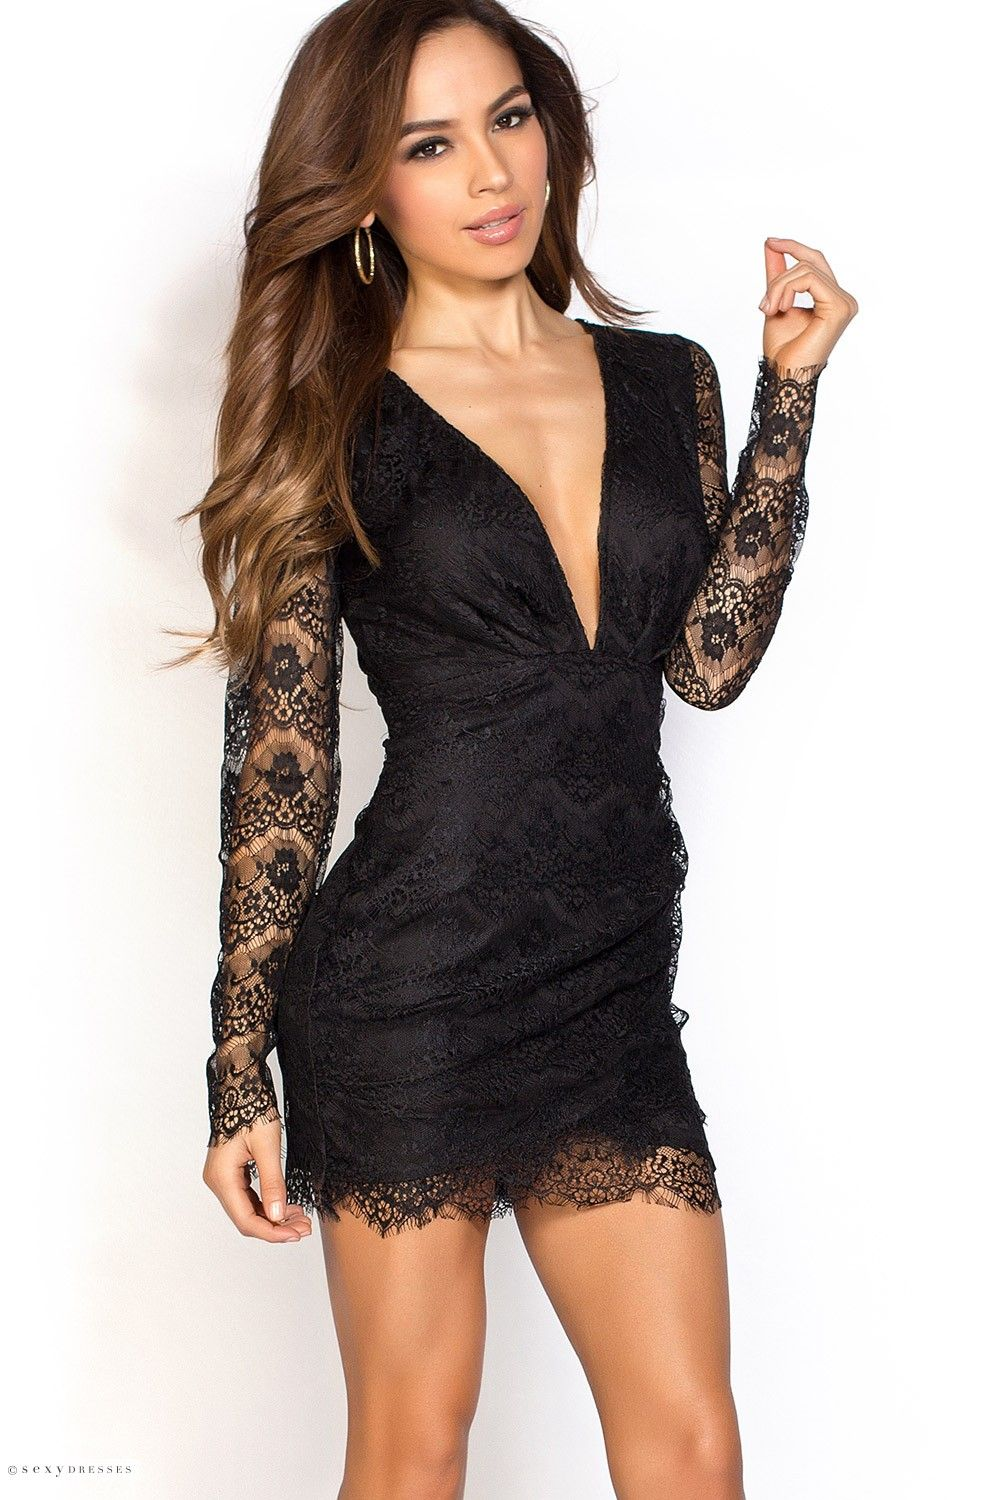 f1bfcf9d20b Dream closets · Open Back Plunging Short Black Lace Dress ...